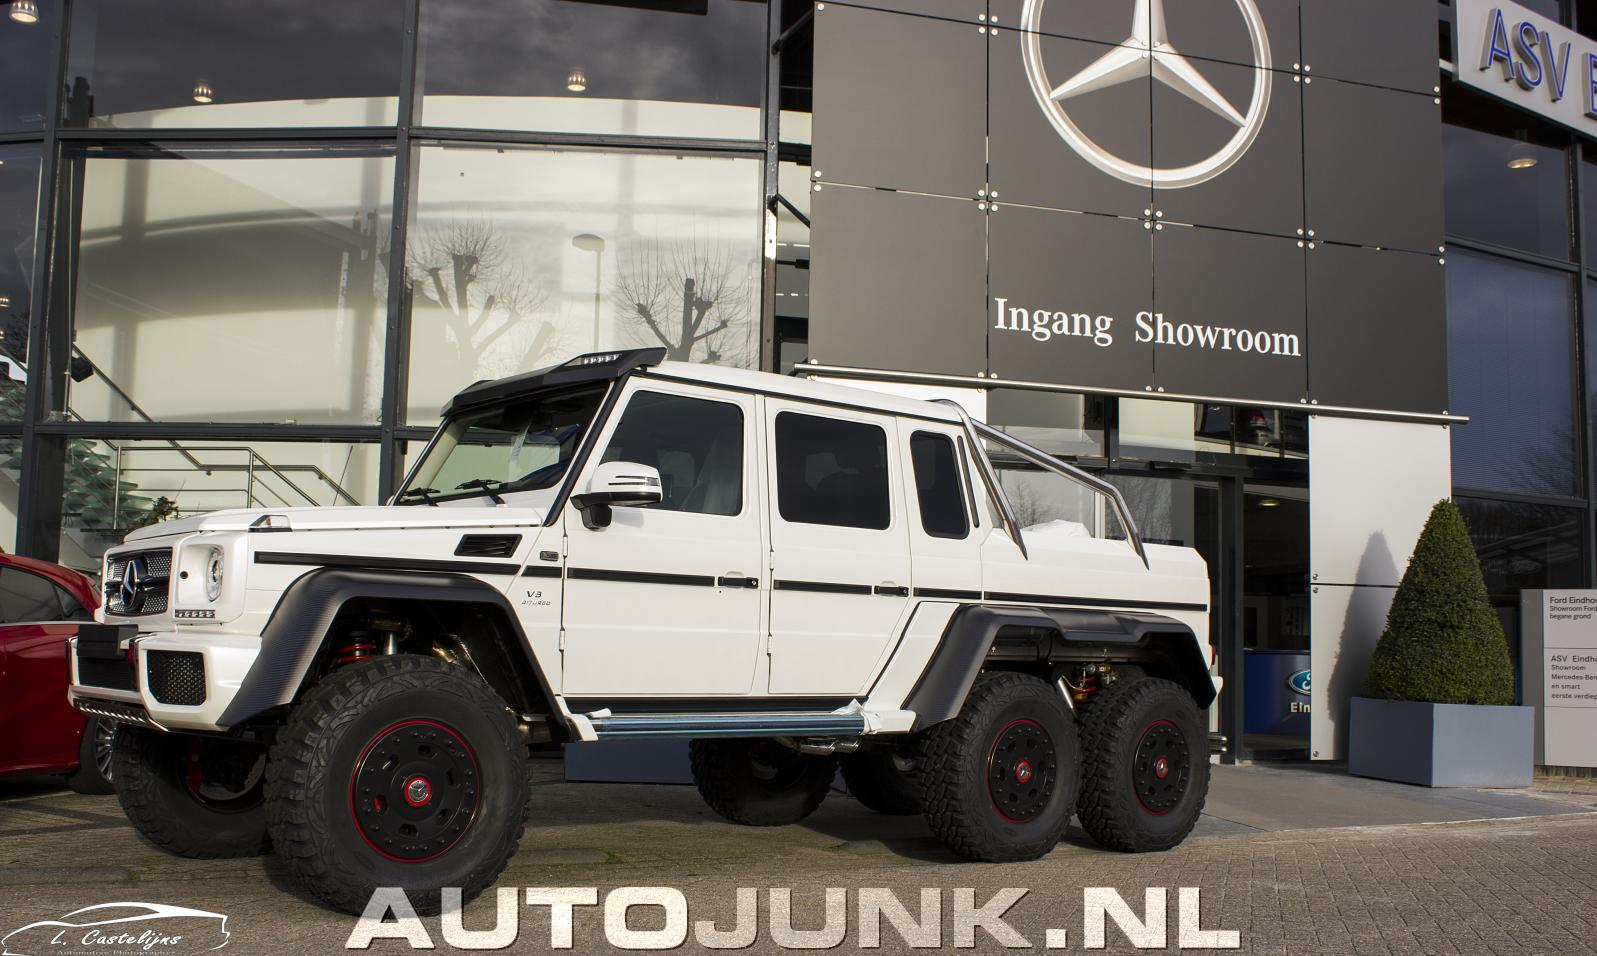 mercedes benz amg g65 price with Mercedes G65 Amg 6x6 on 25 moreover Gt Spirit New 118 Mercedes Benz G63 Amg moreover Mercedes G65 Amg 6x6 in addition 28 moreover Brabus Mercedes G63 AMG 6x6 3.